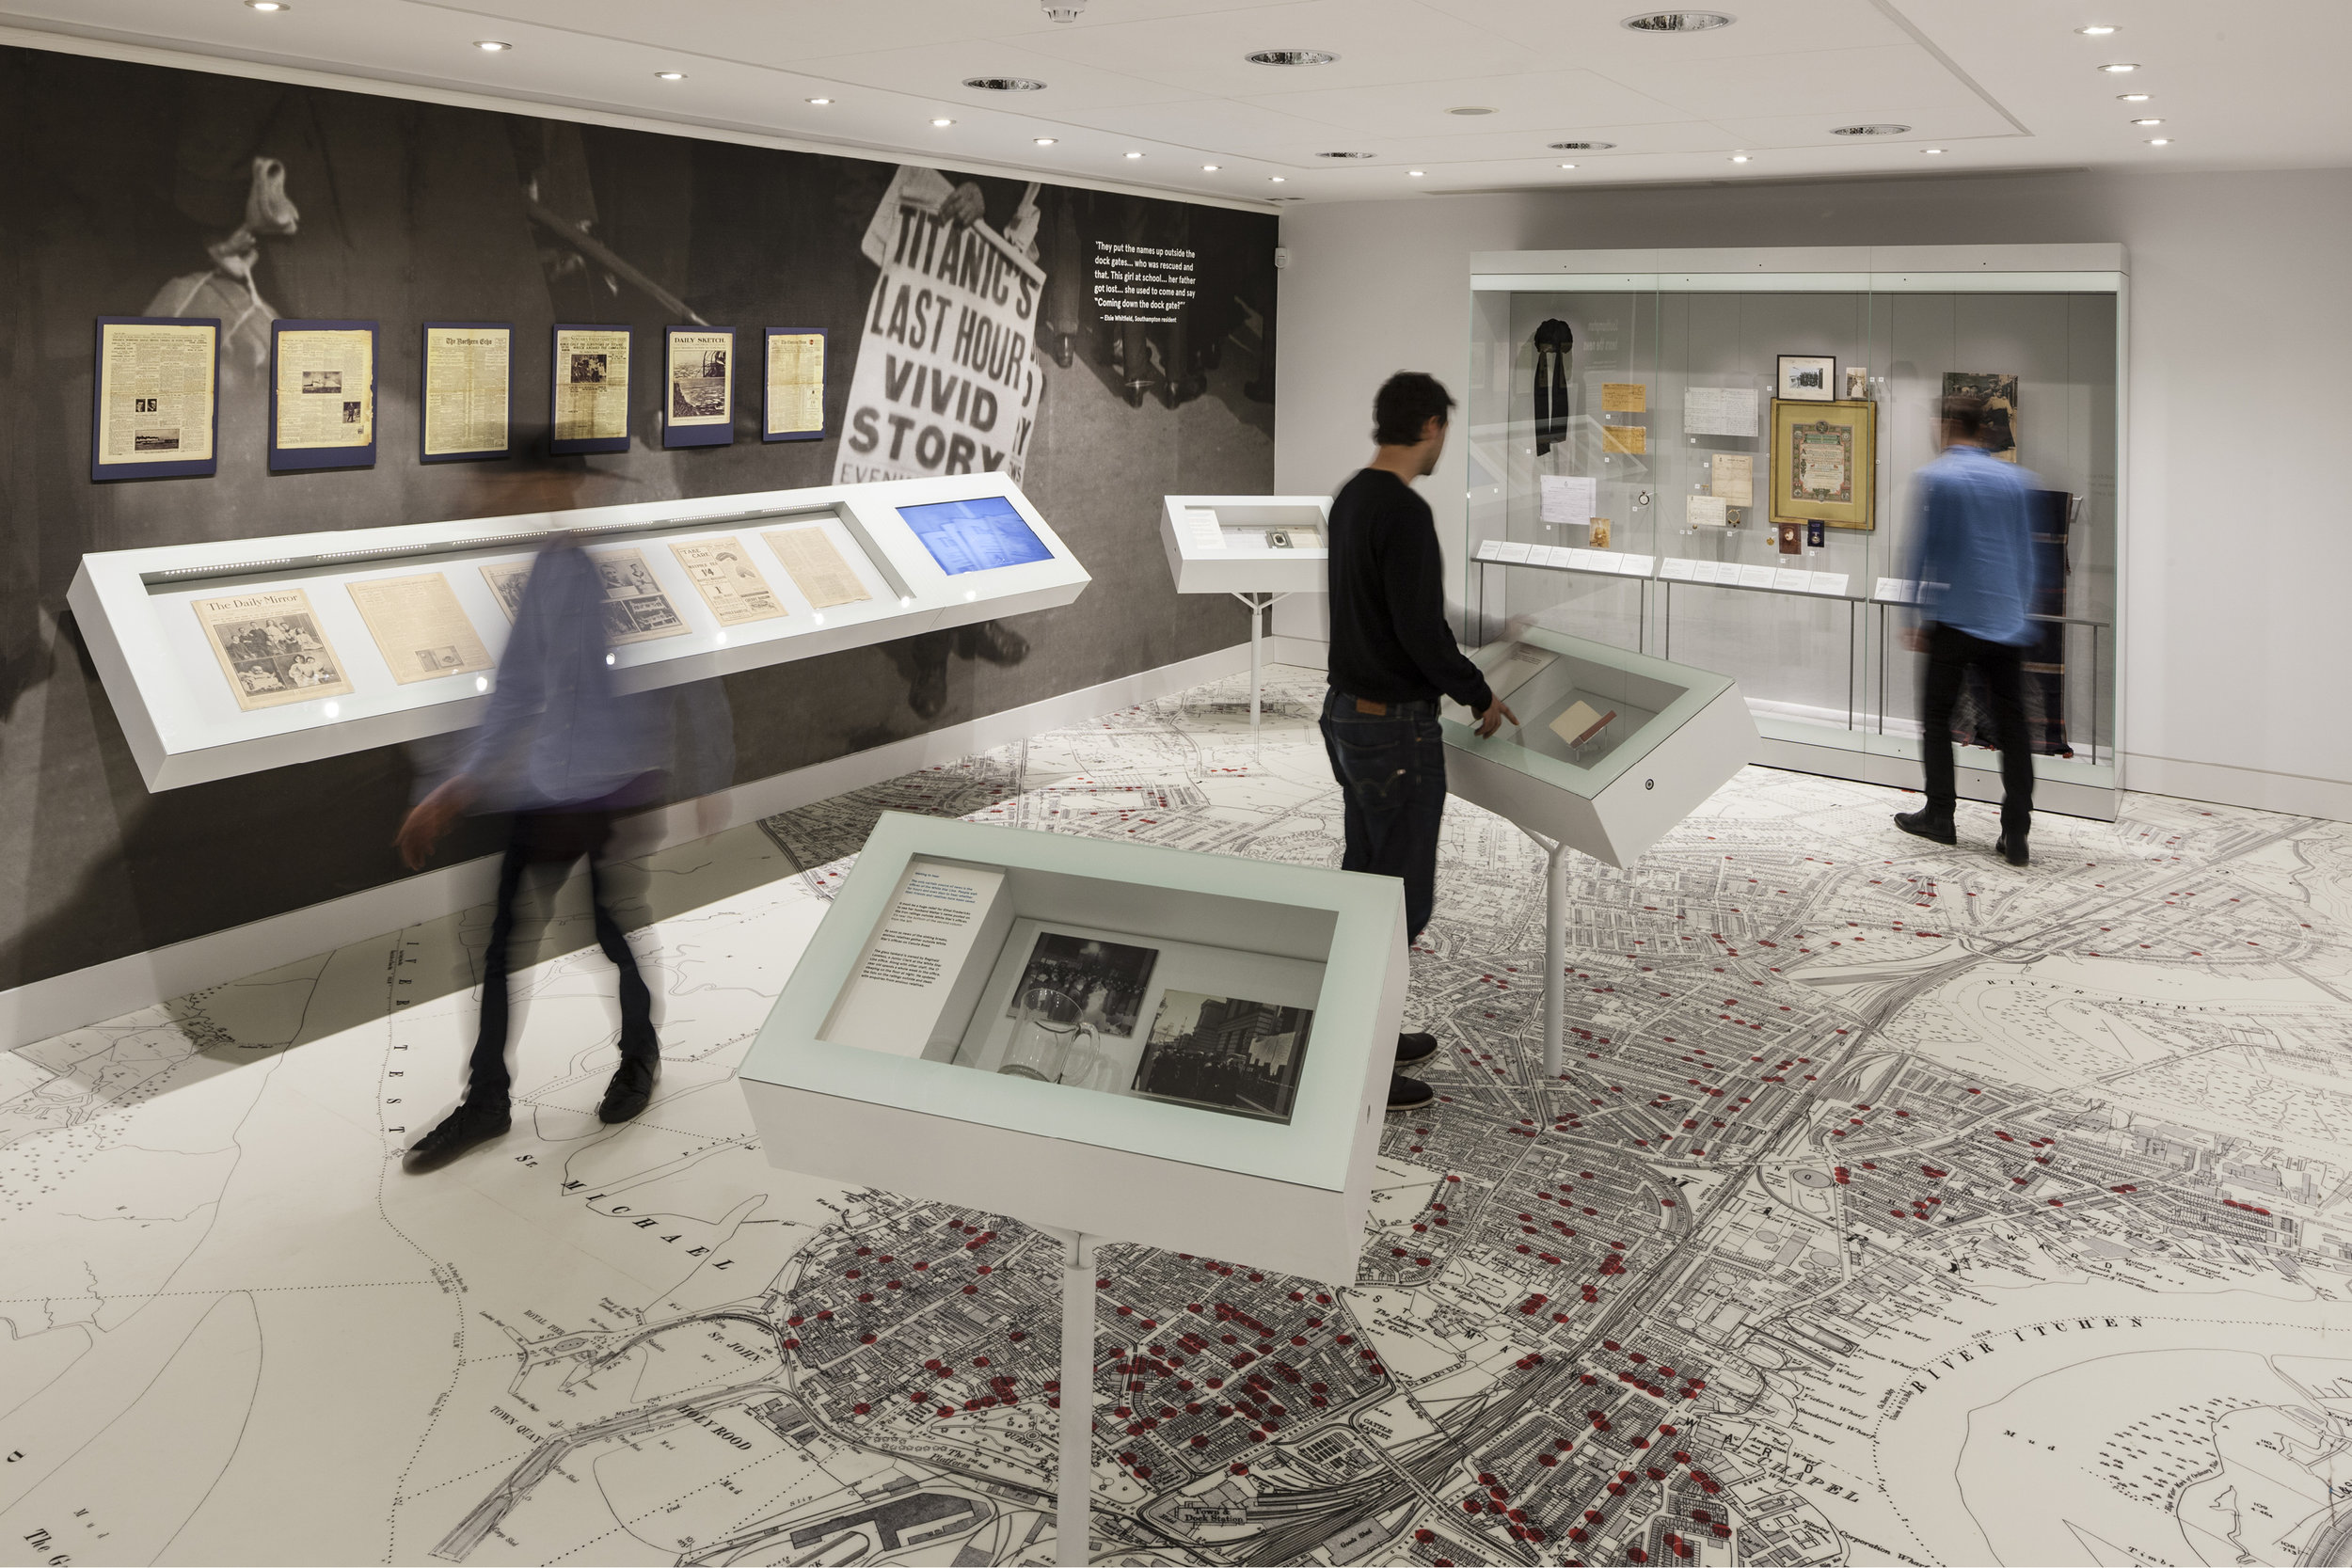 Photograph of Exhibition Design at the SeaCity Museum in Southampton